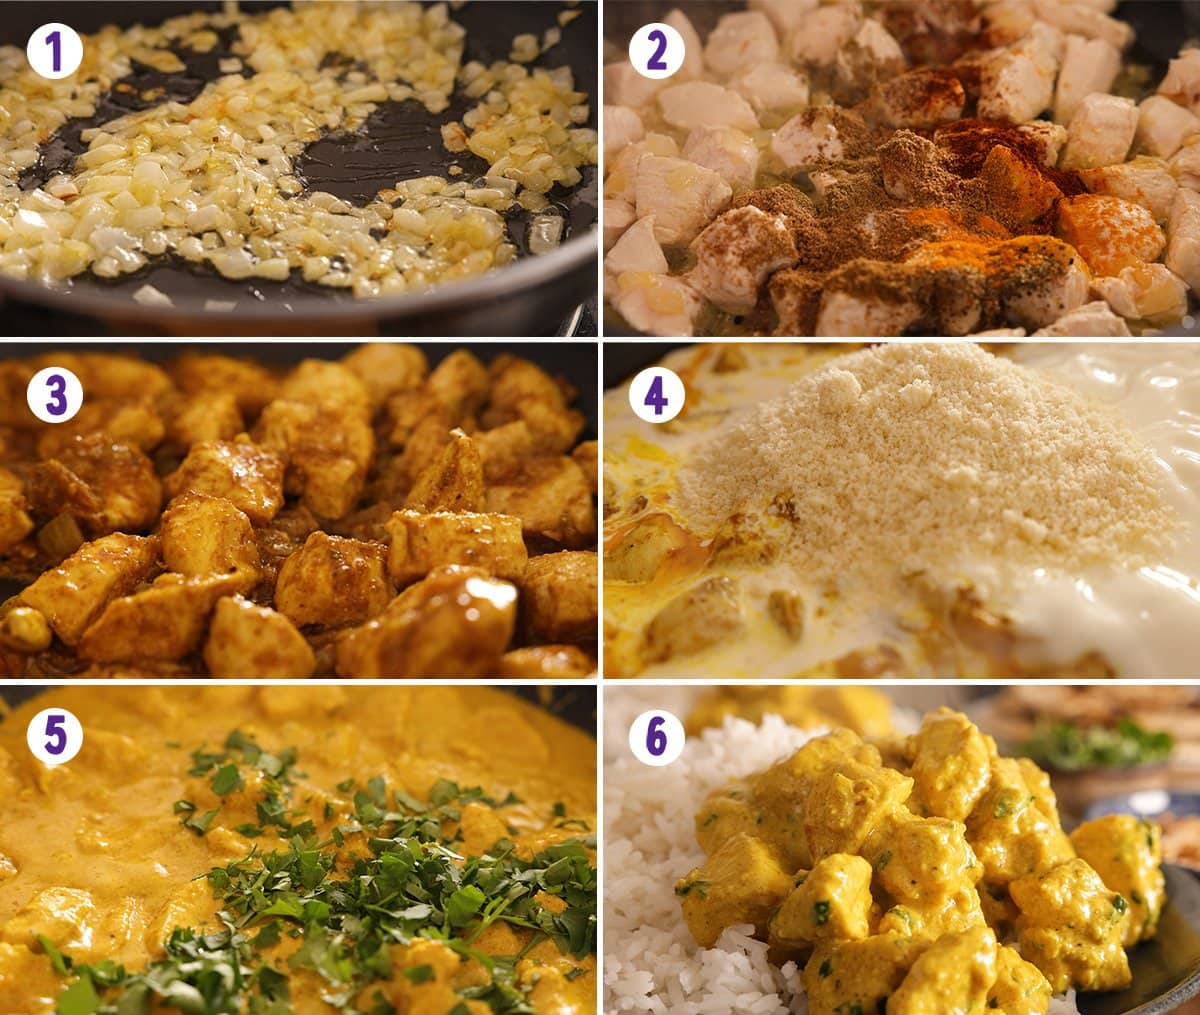 6 image collage showing how to make chicken pasanda.